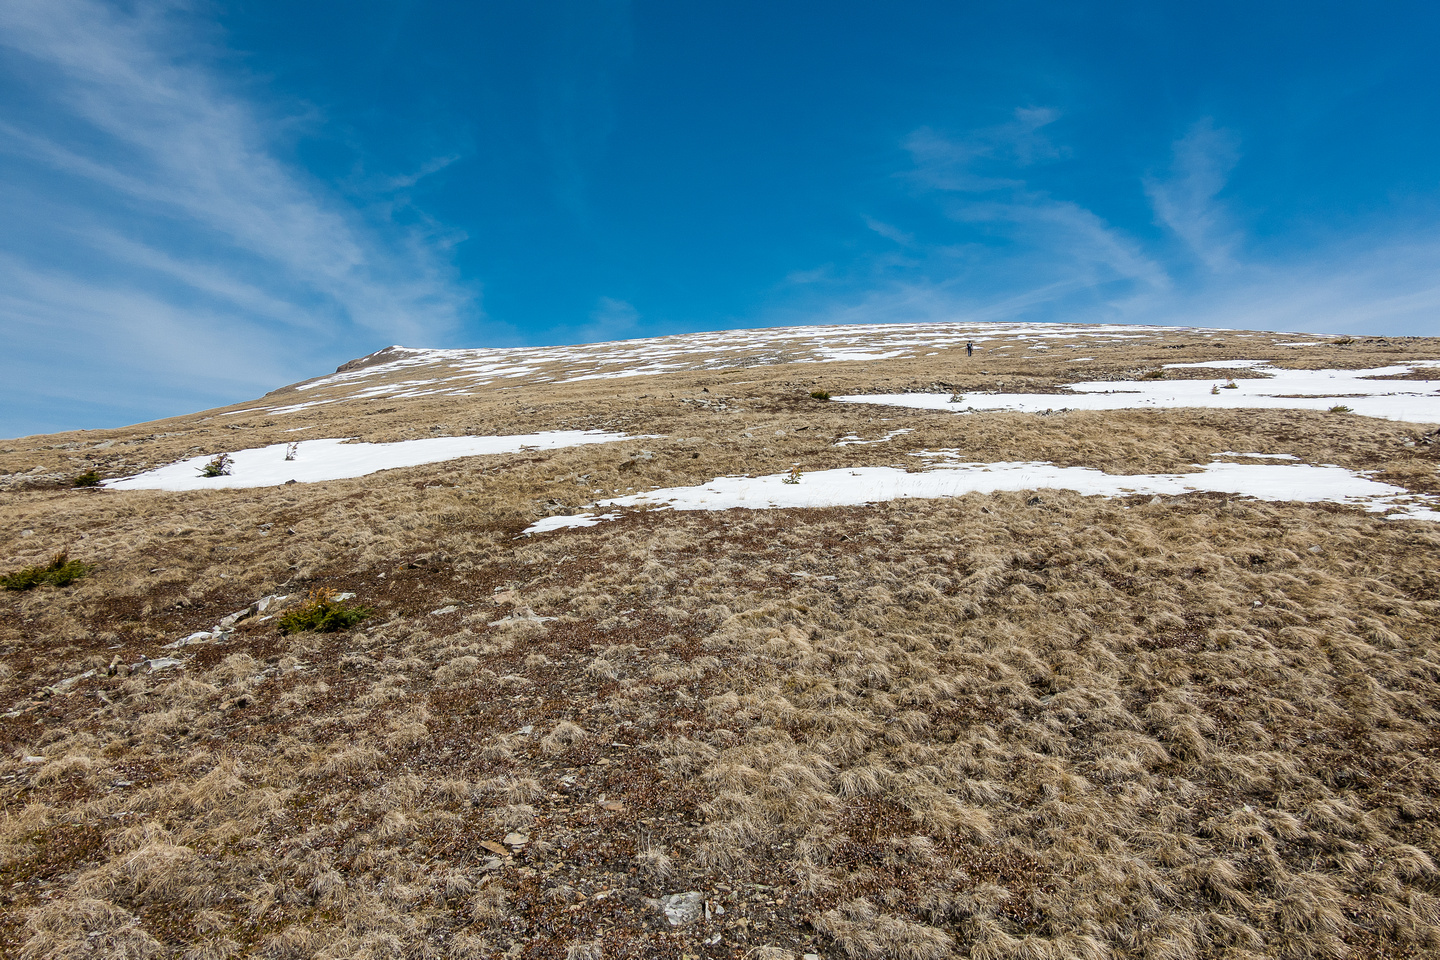 Not a ton of snow as we trudge up the endless south slopes of Scalp Peak.